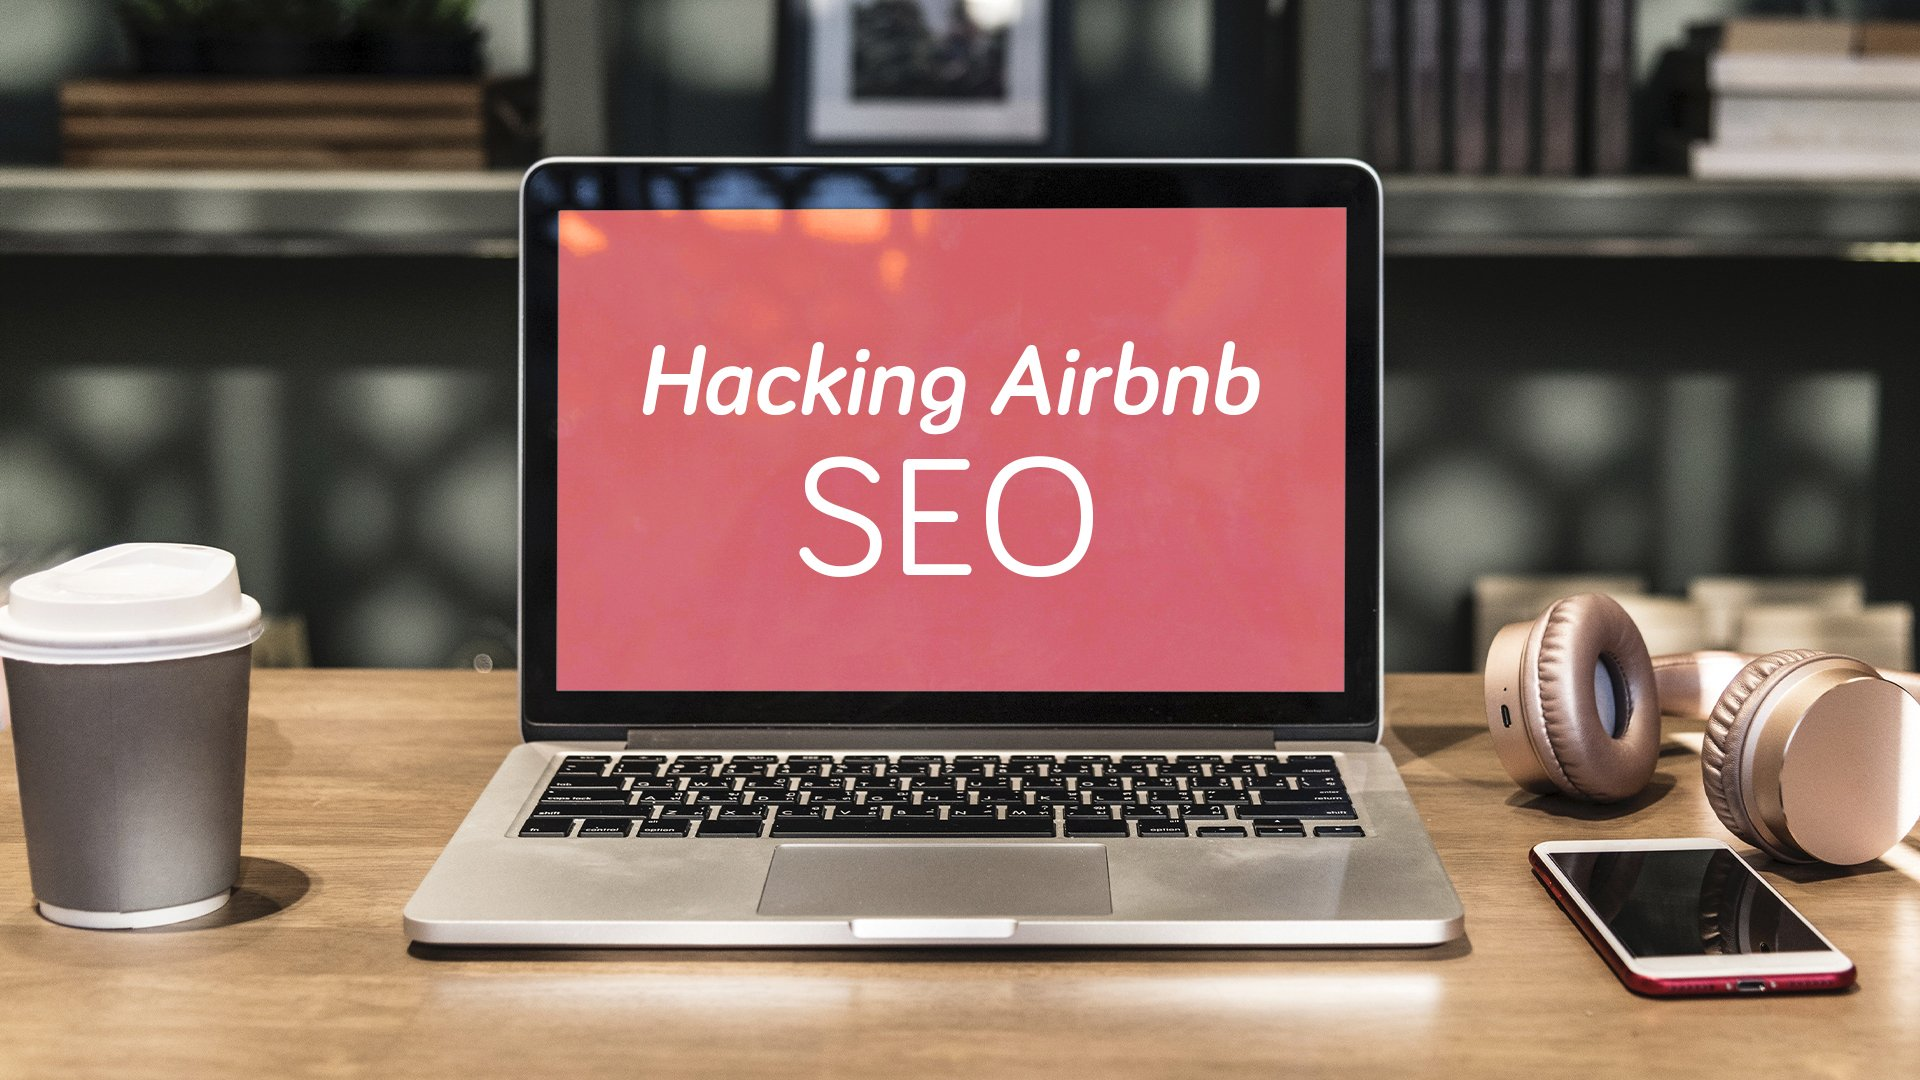 Hacking Airbnb SEO